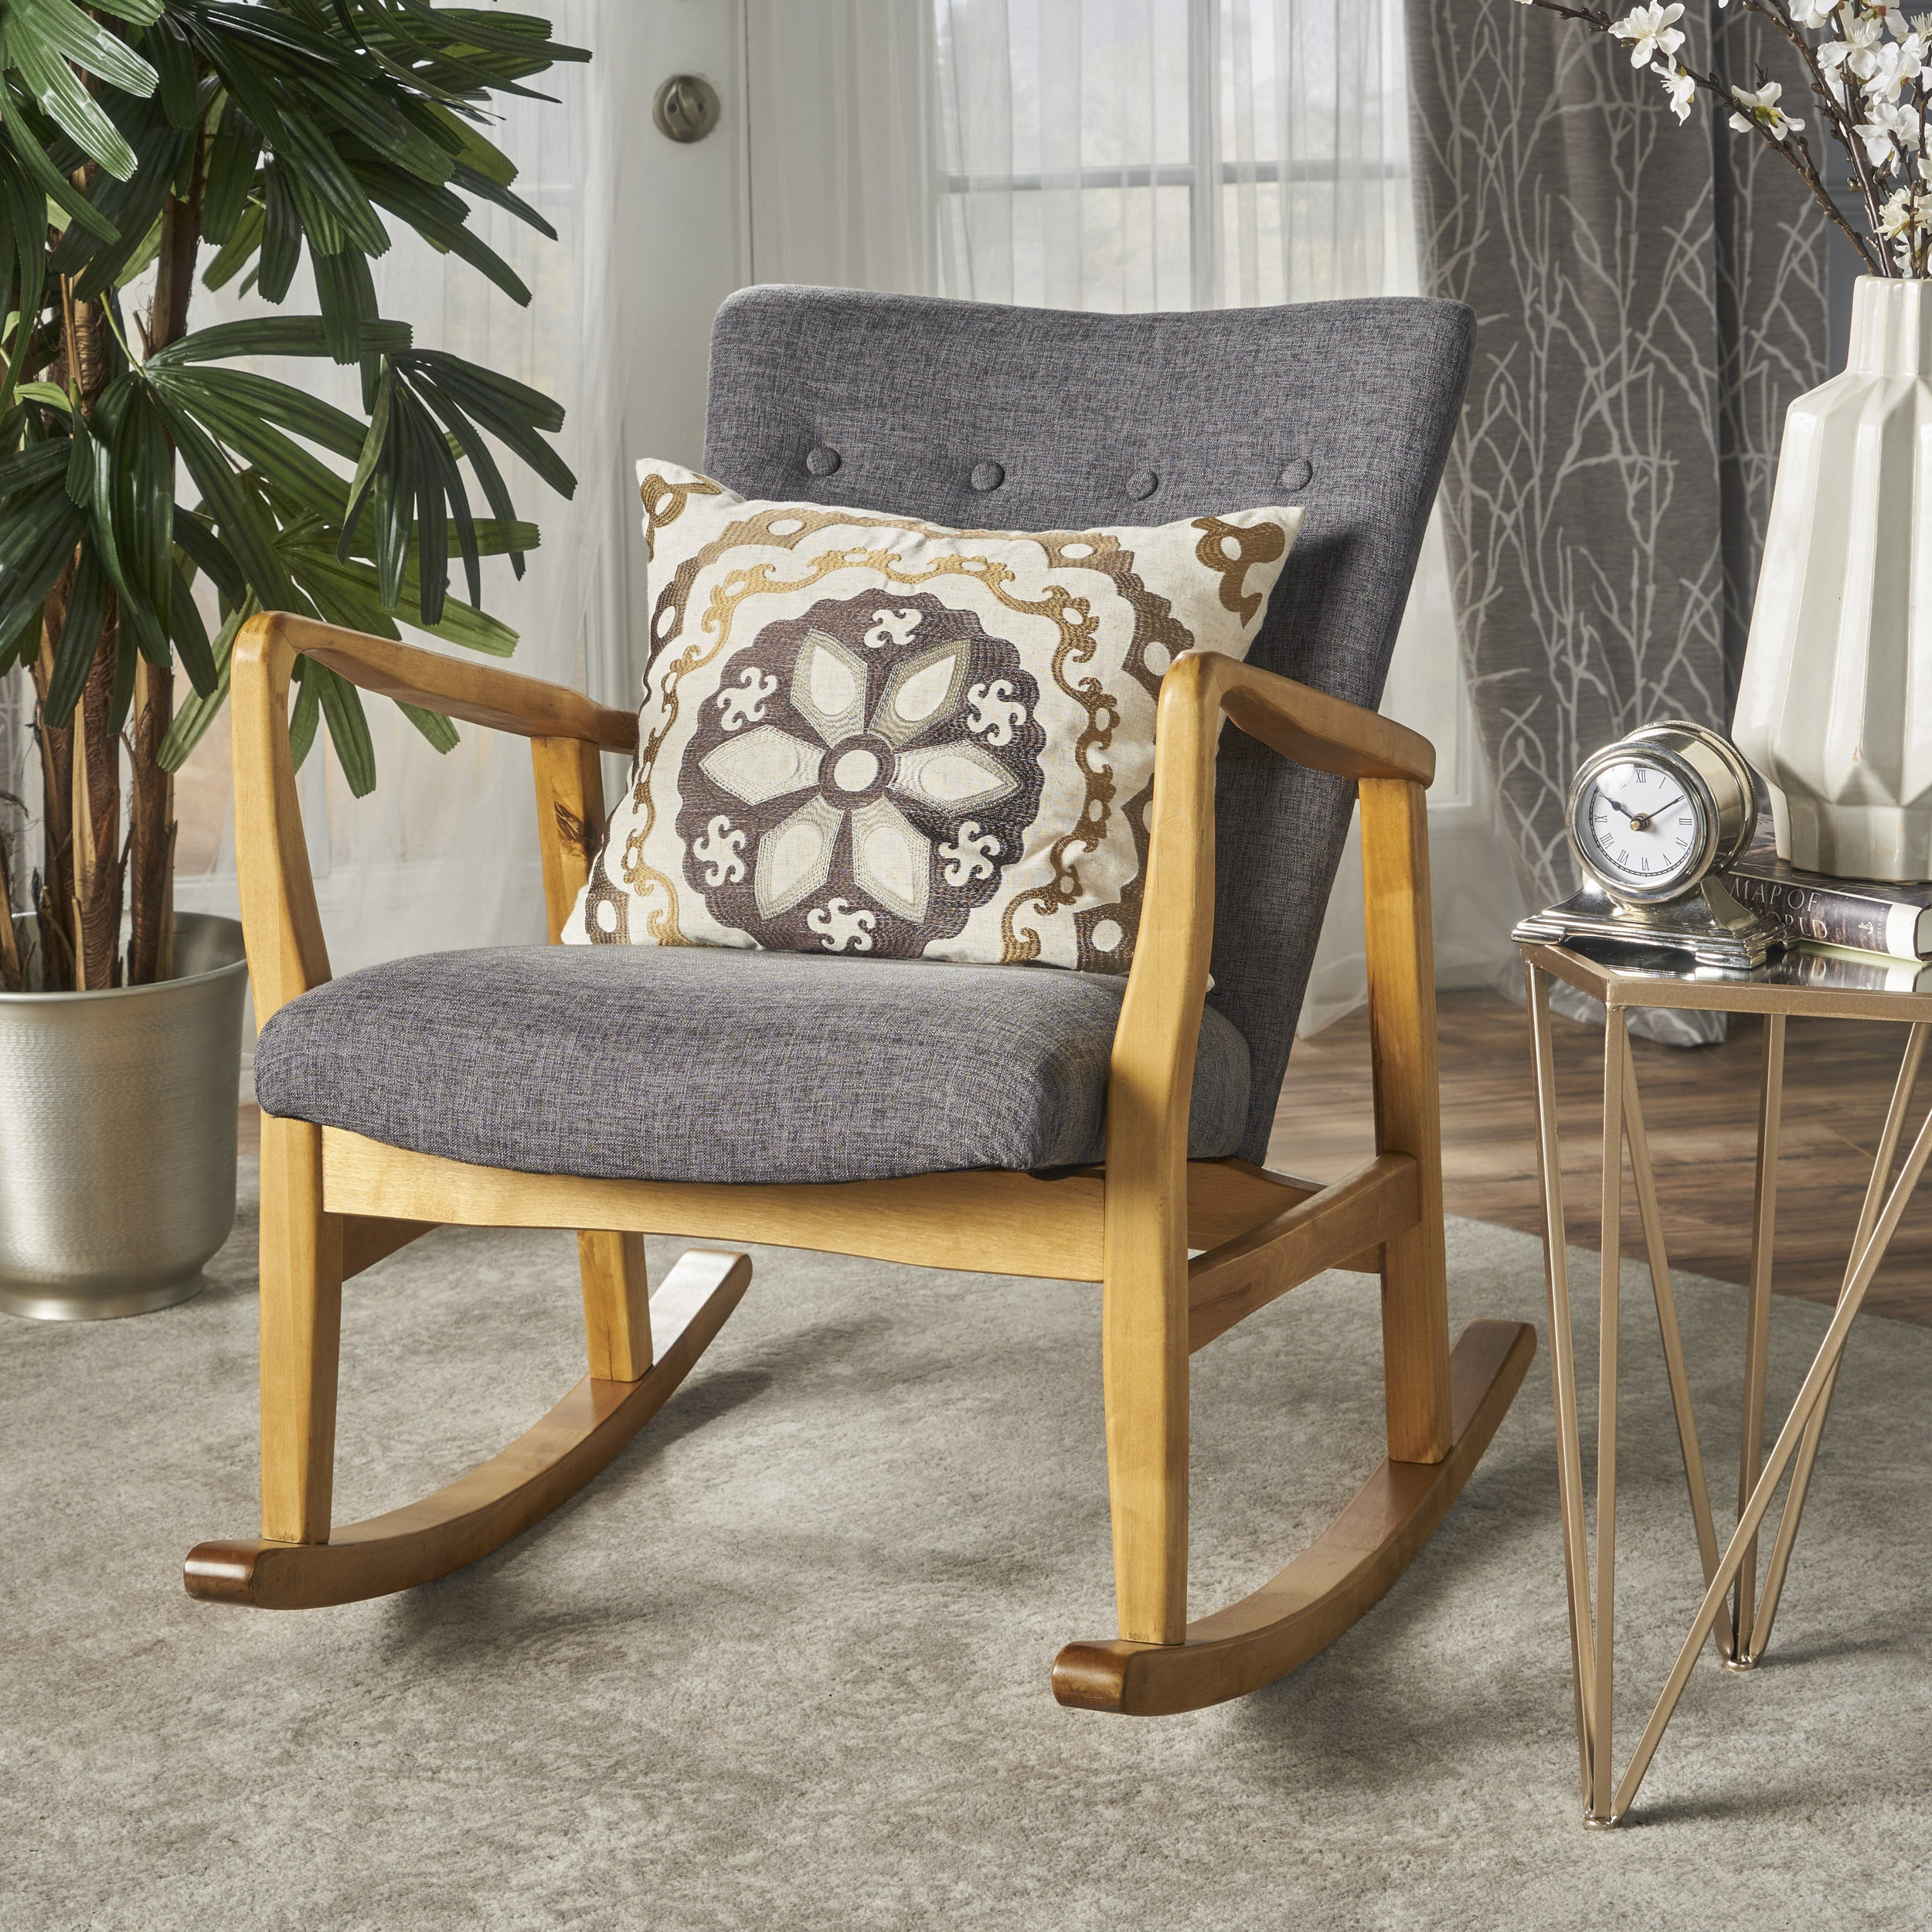 Inspiration about Rocking Chairs Living Room Chairs | Shop Online At Overstock In Wooden Rocking Chairs With Fabric Upholstered Cushions, White (#9 of 20)